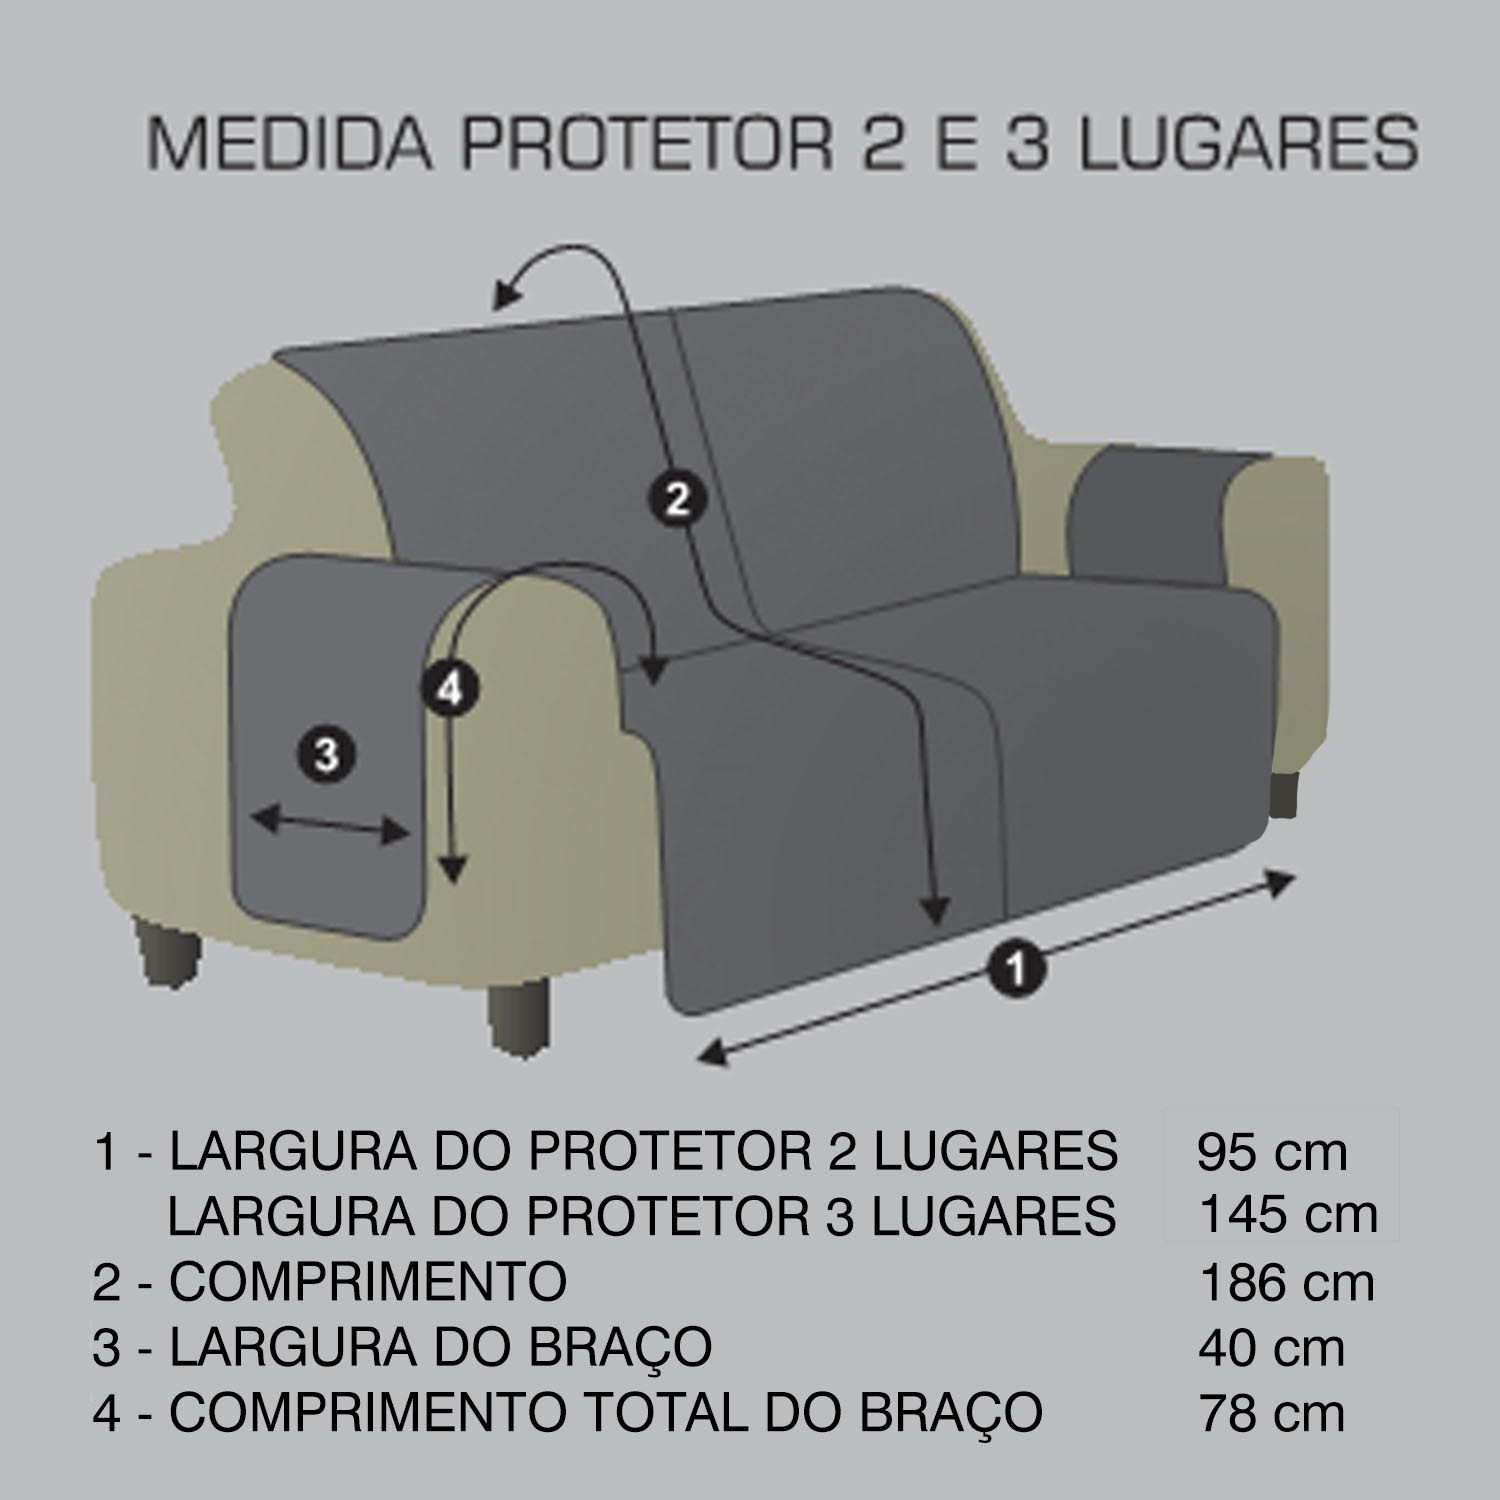 Sofa 2 Lugares Largura Medidas Protetor De Sofa Hedrons Muebles Pinterest English